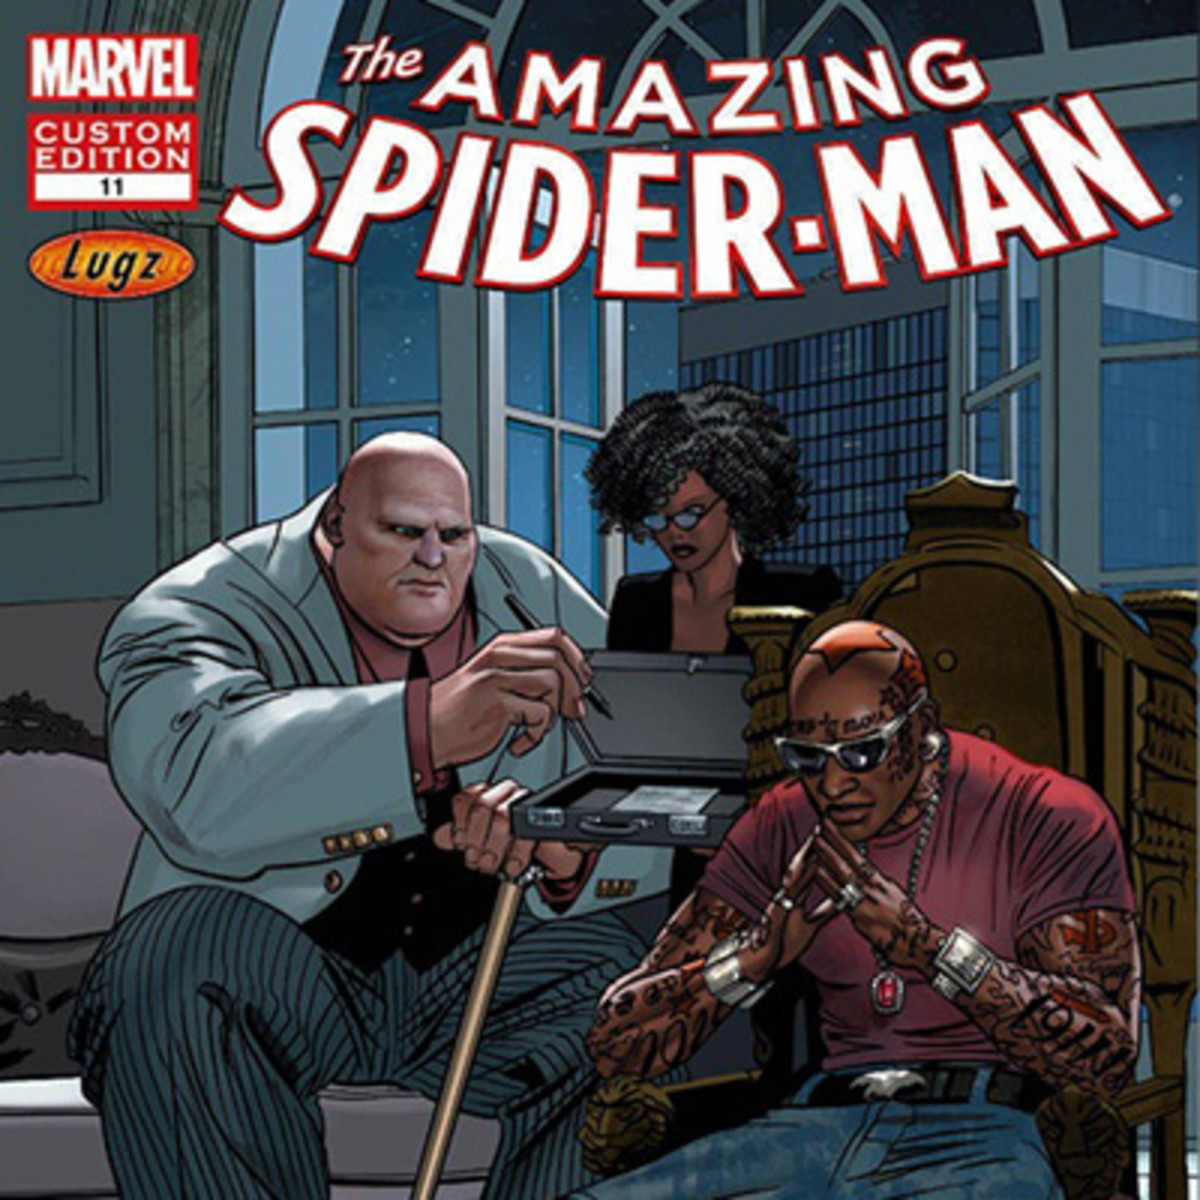 birdman-spiderman.jpg